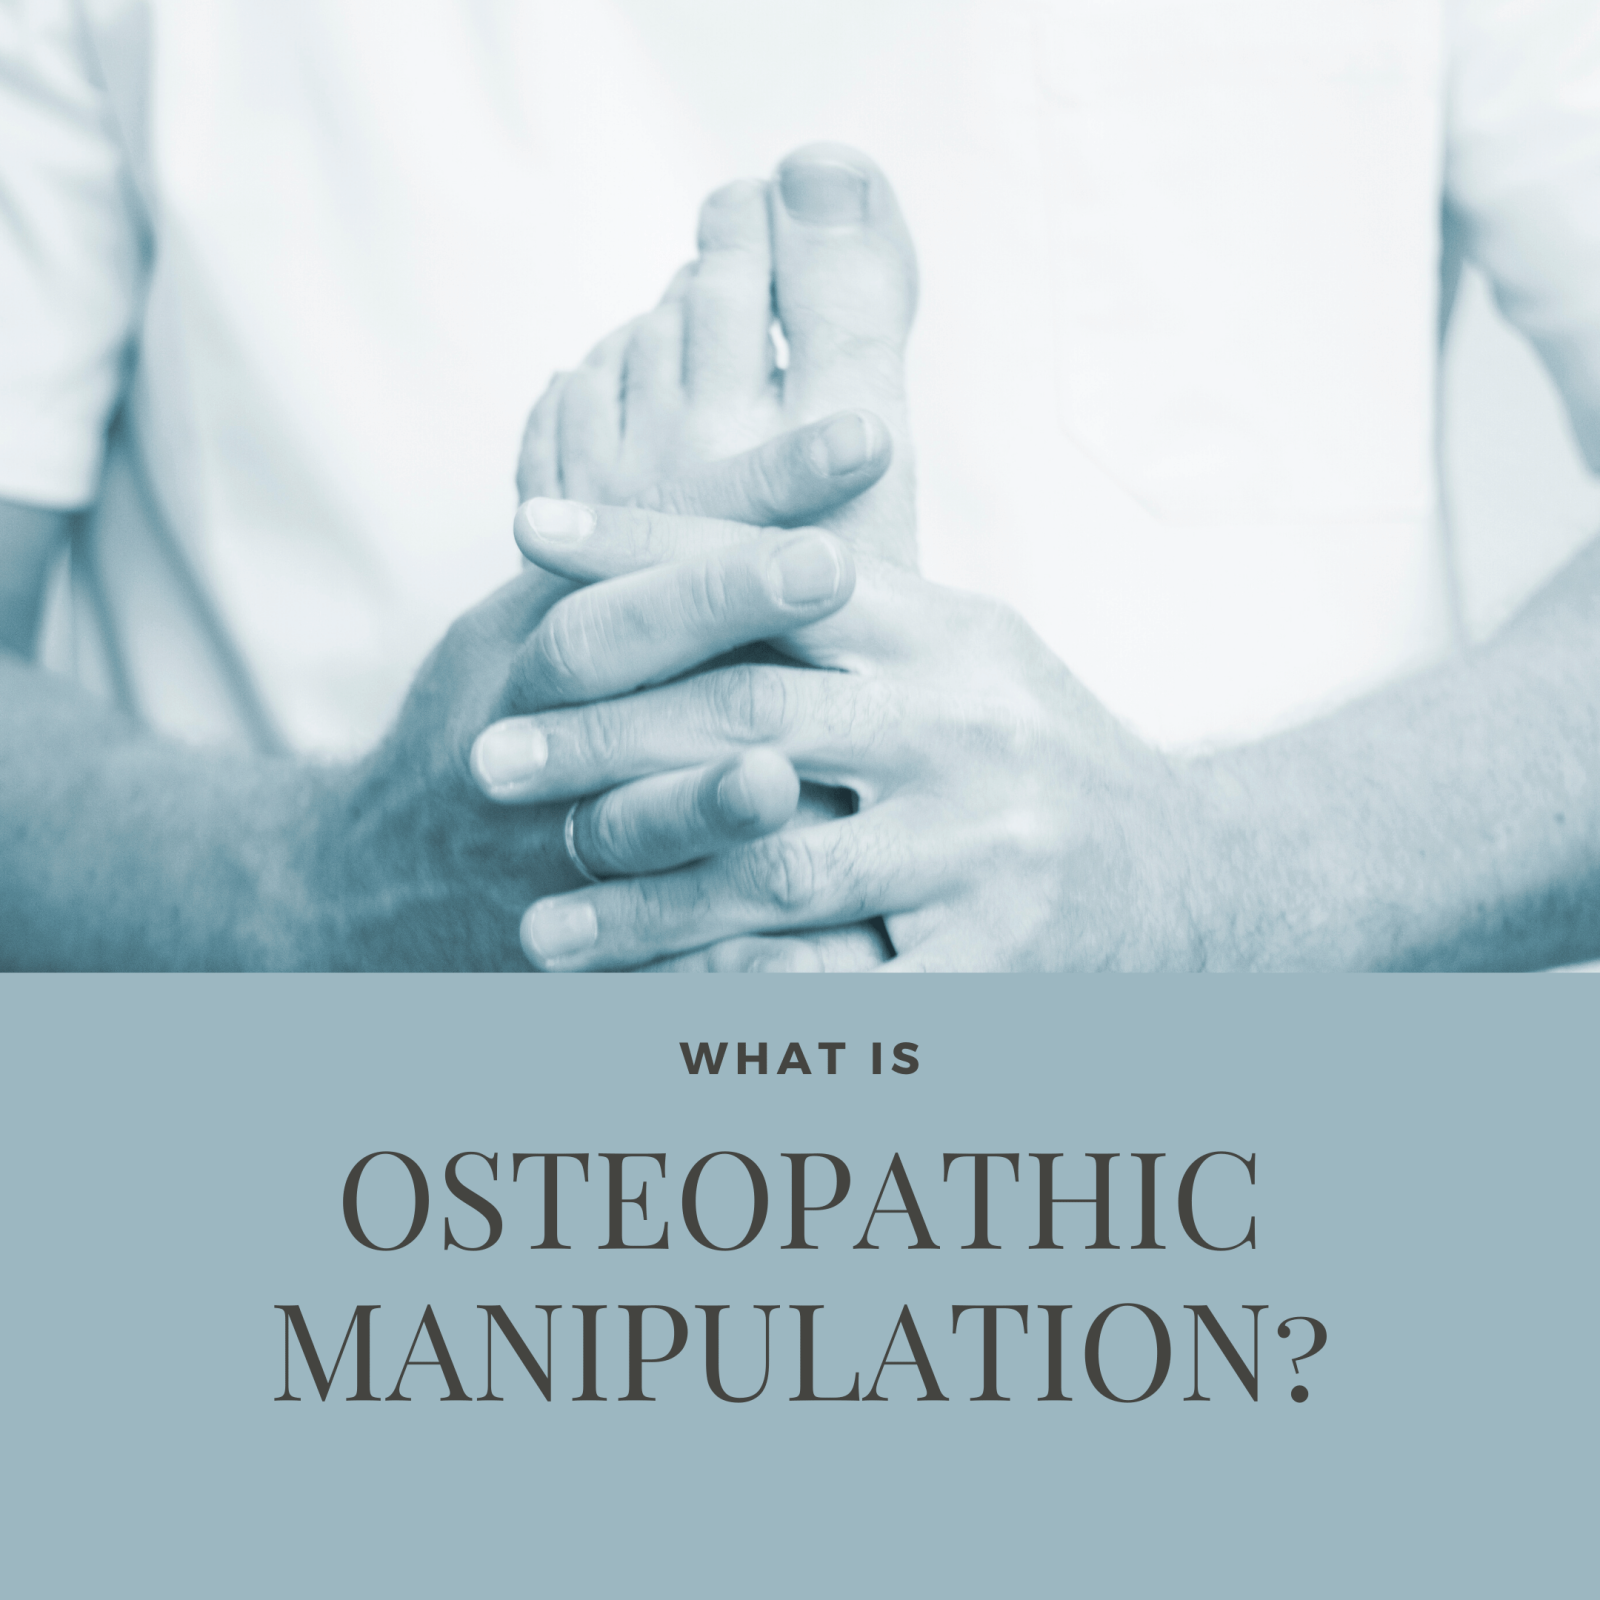 What is Osteopathic Manipulation